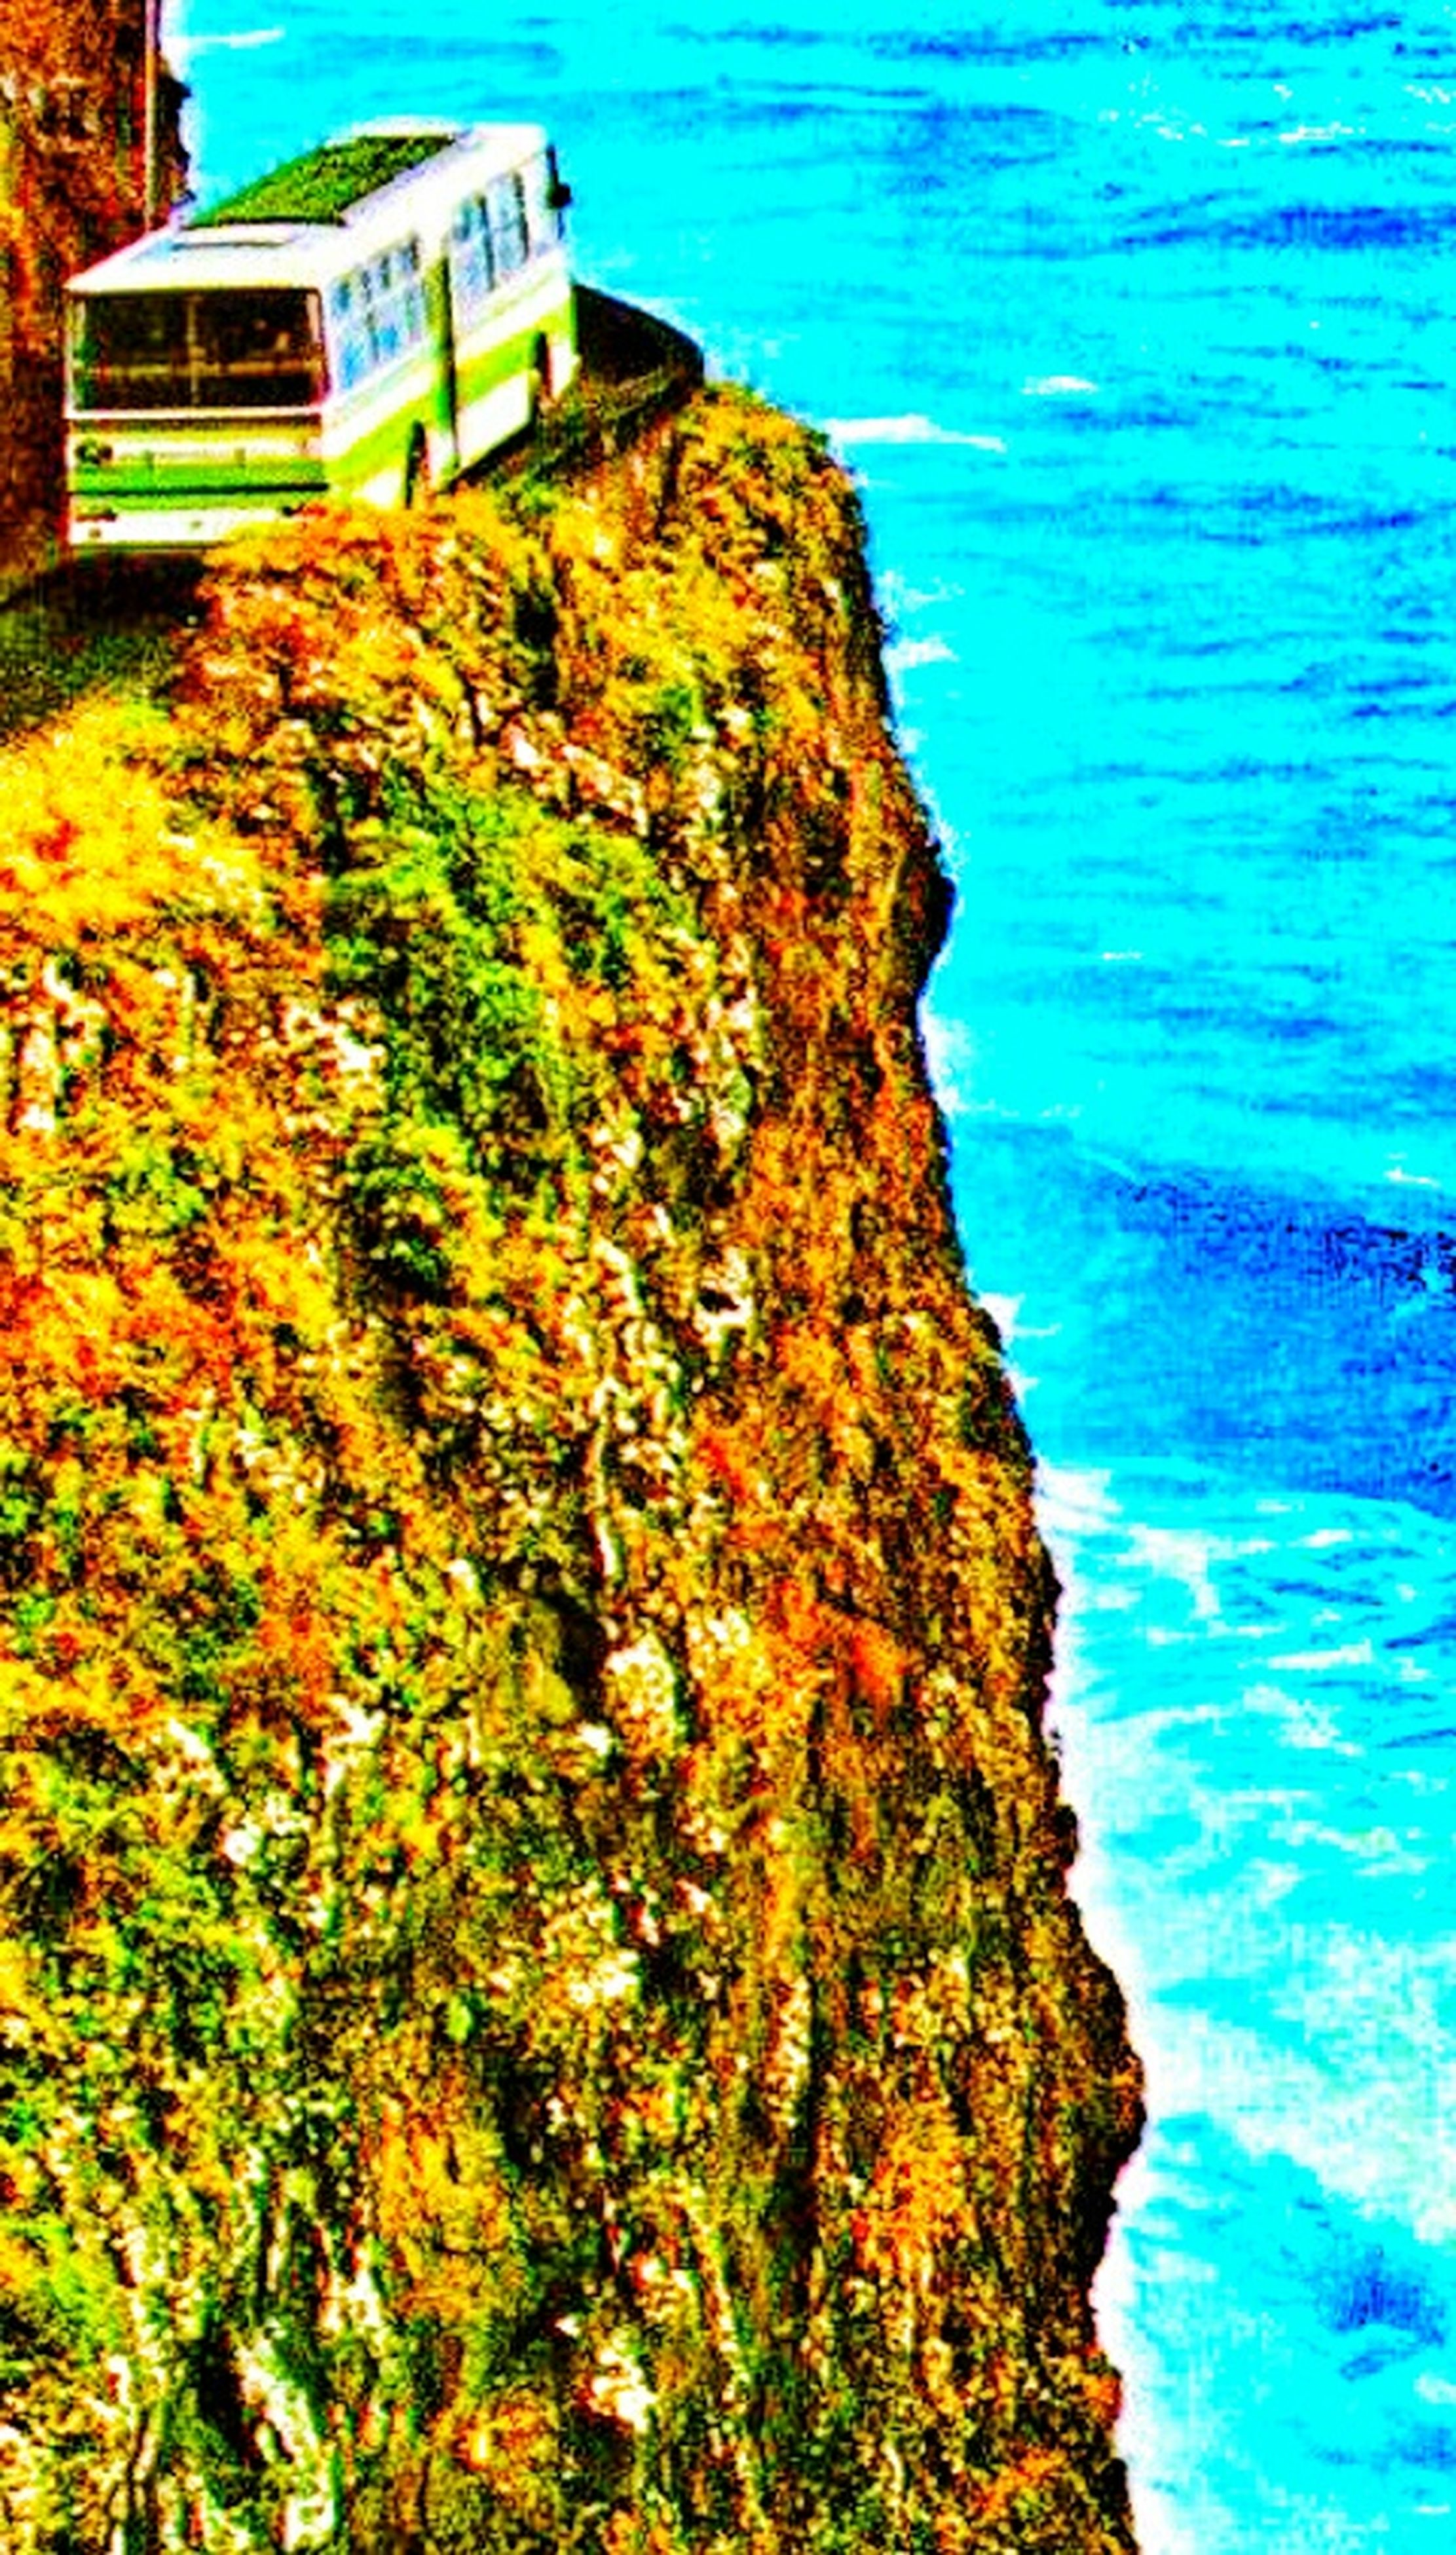 water, blue, sea, high angle view, nature, rock - object, turquoise colored, beauty in nature, tranquility, day, no people, outdoors, waterfront, rippled, rock formation, built structure, tranquil scene, scenics, sunlight, building exterior